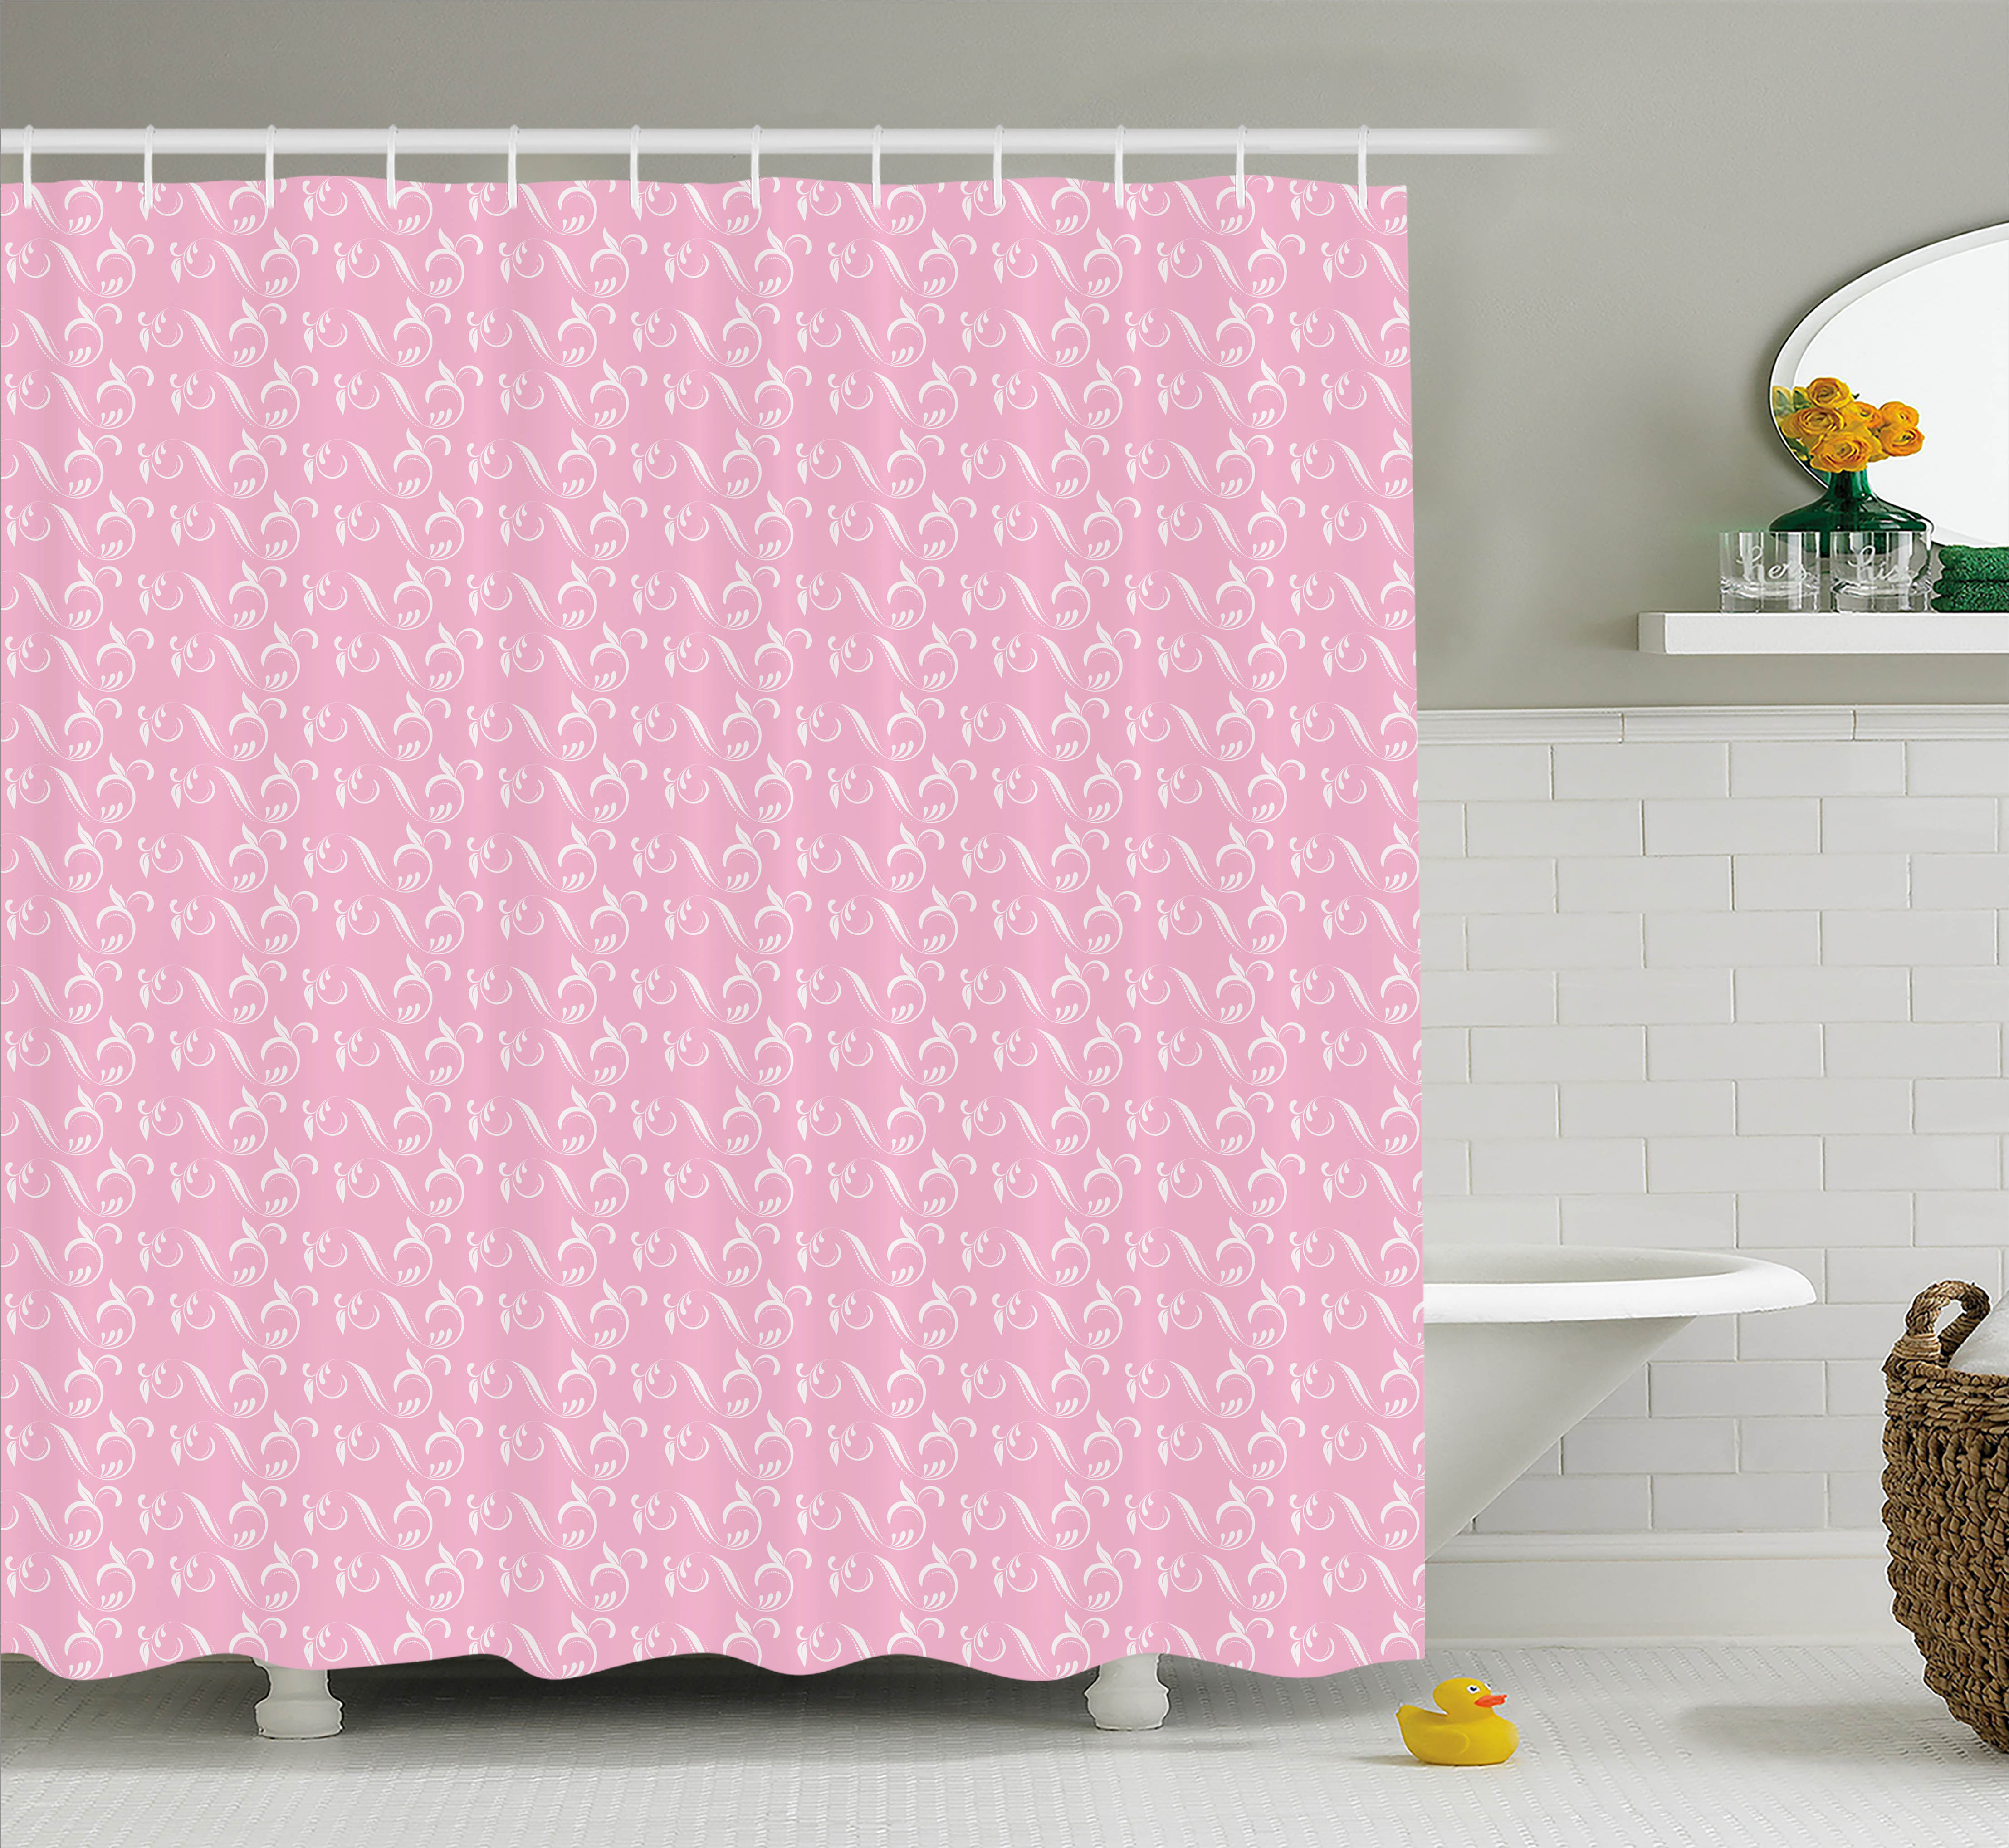 Floral Shower Curtain, White Artistic Leaves with Ornaments on Pink Background Wavy Pattern Artwork, Fabric Bathroom Set with Hooks, 69W X 75L Inches Long, Pale Pink White, by Ambesonne